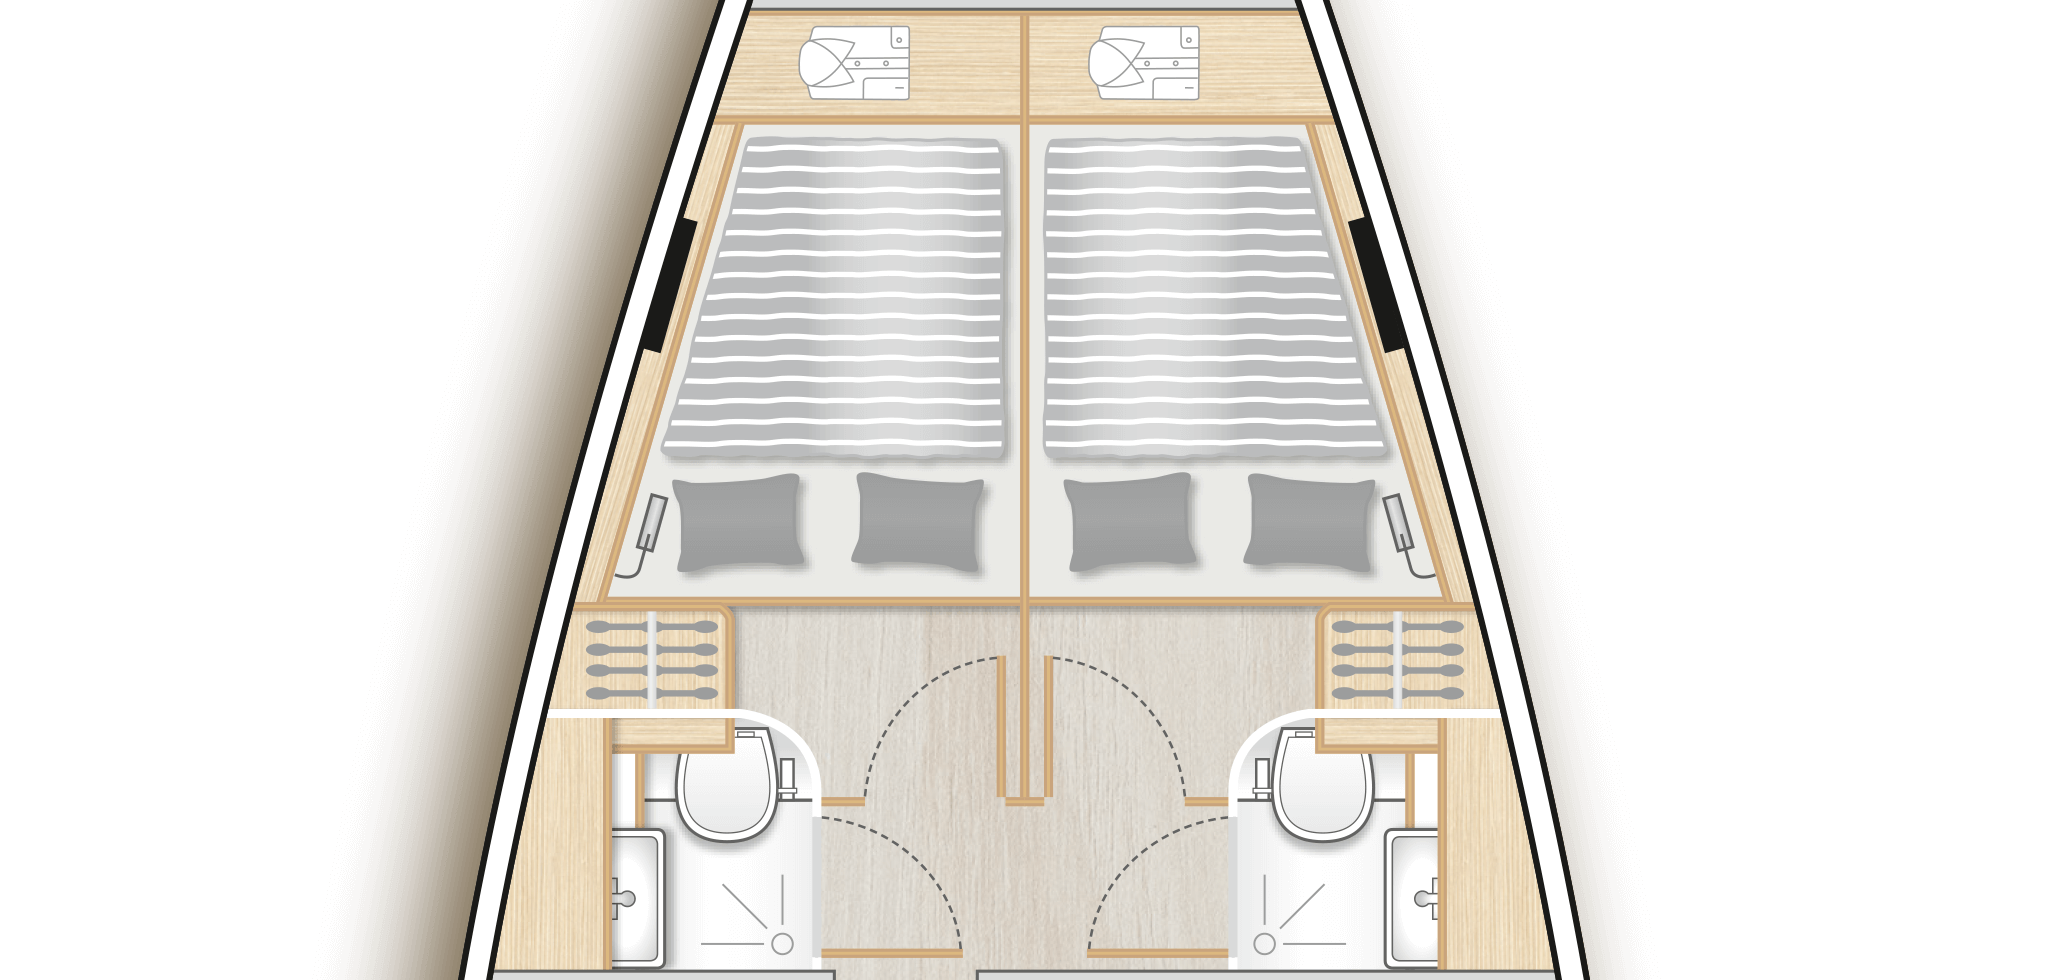 B2: 2 fwd cabins with double berth, storage space and separate head